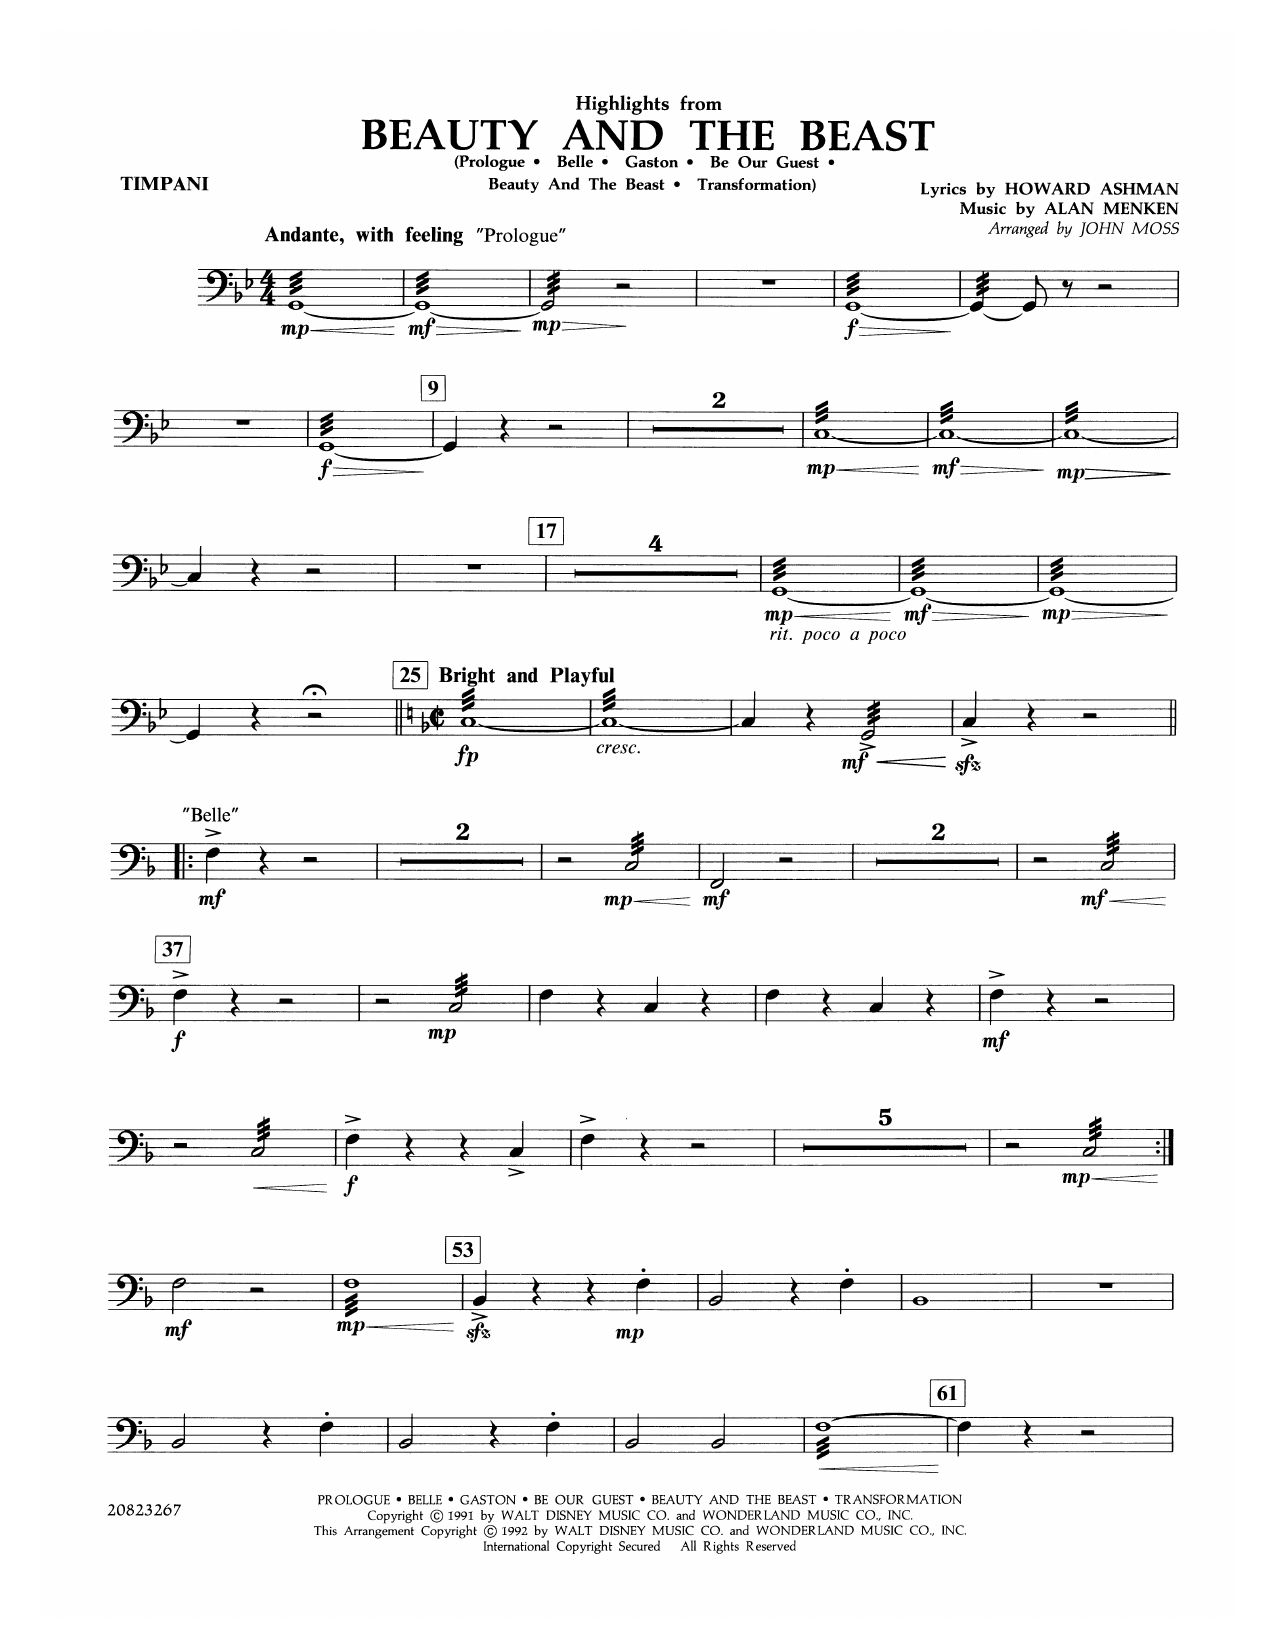 John Moss Highlights from Beauty and the Beast - Timpani sheet music notes and chords. Download Printable PDF.